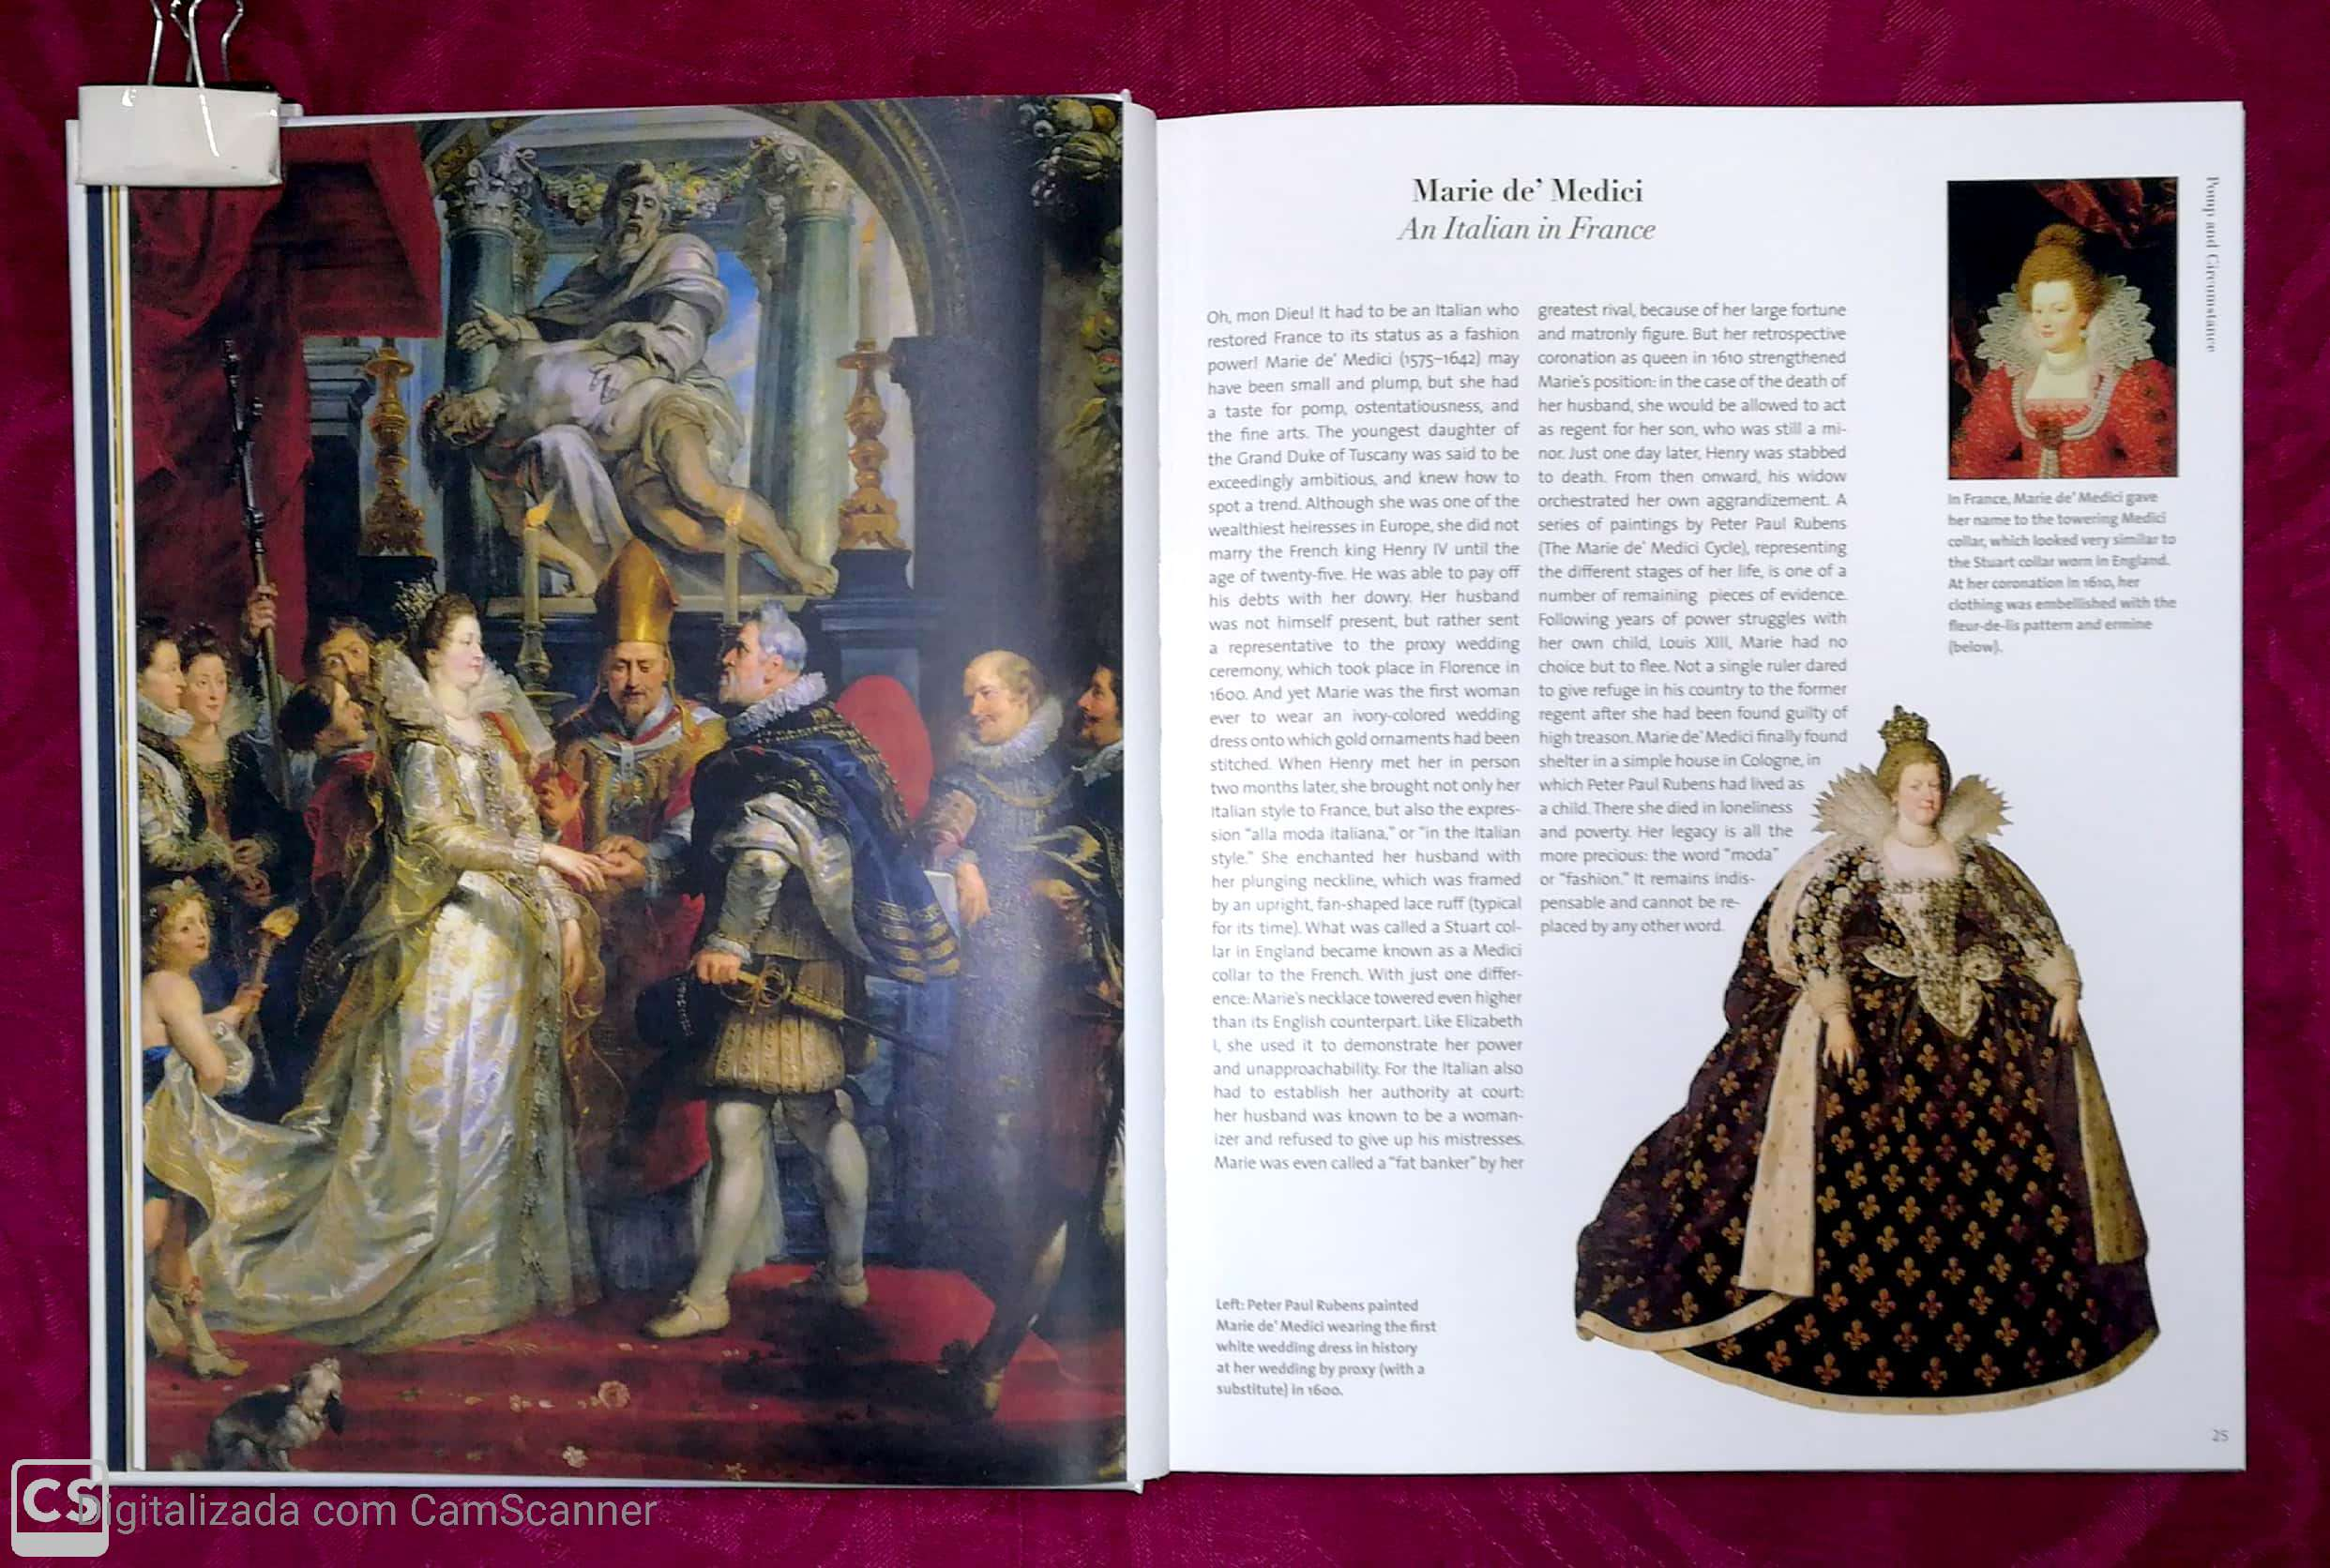 Royal Style. A History of Aristocratic Fashion Icons 6 (6)